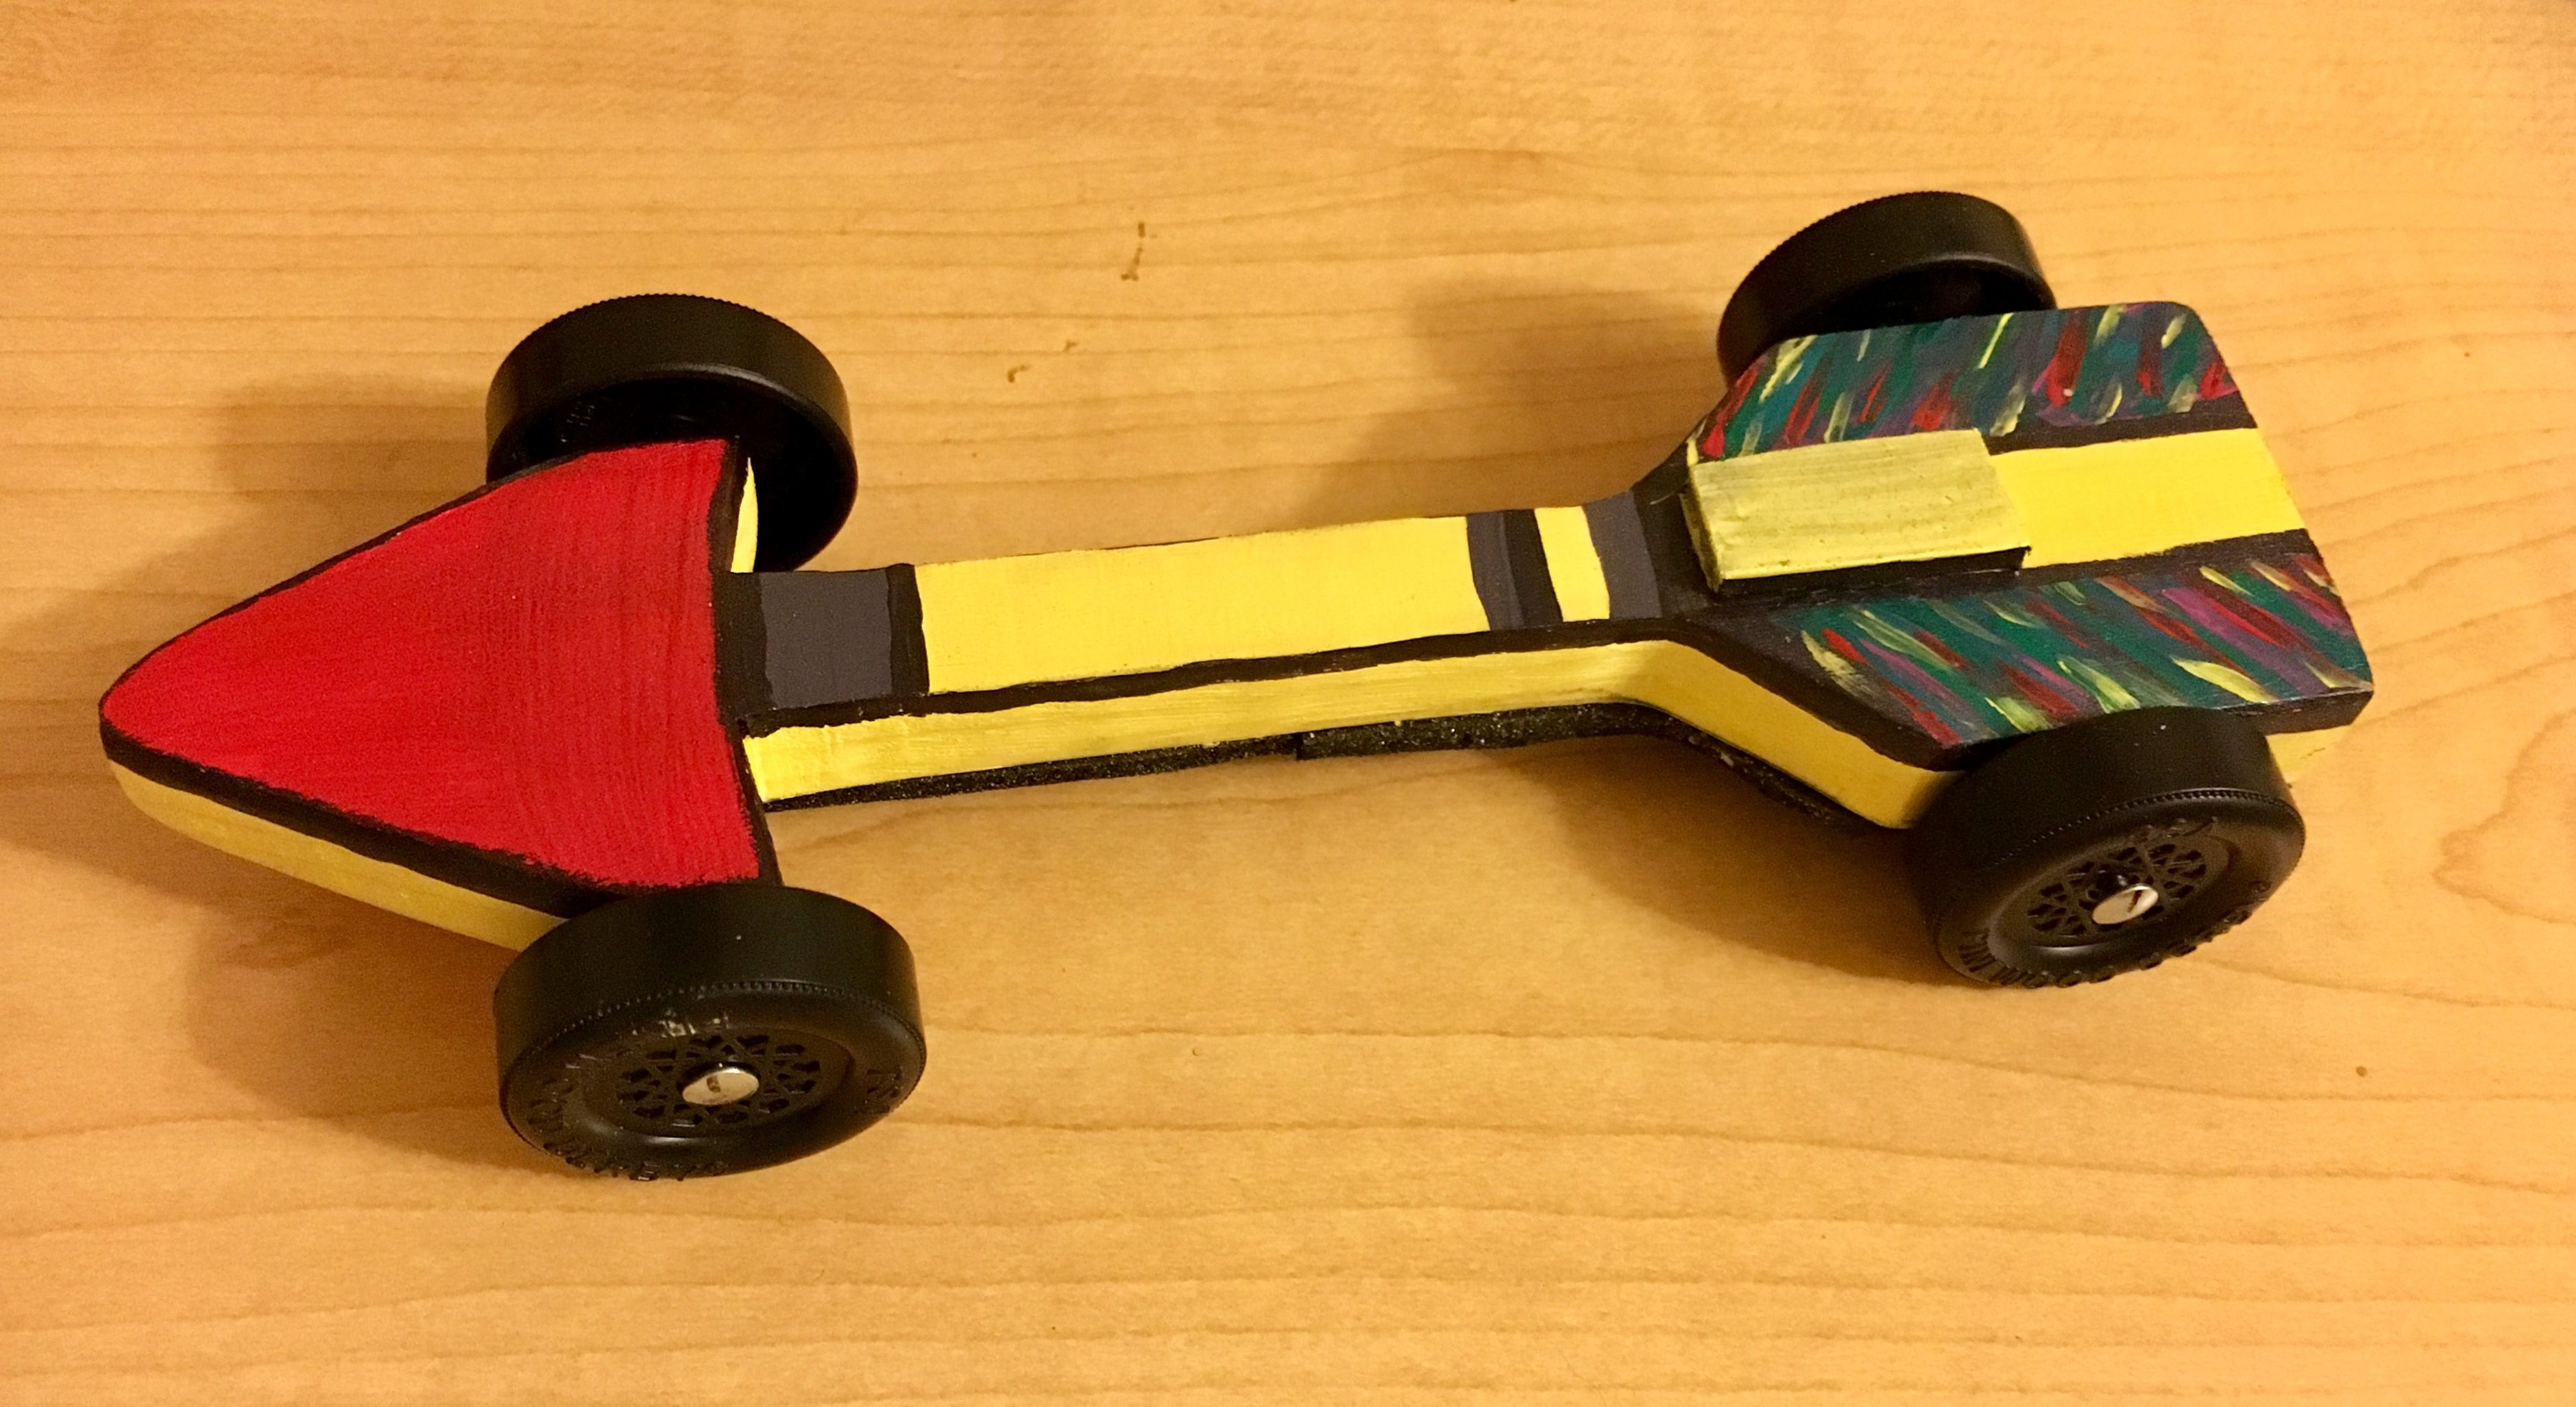 Pin On Pinewood Derby Cub scout pinewood derby template